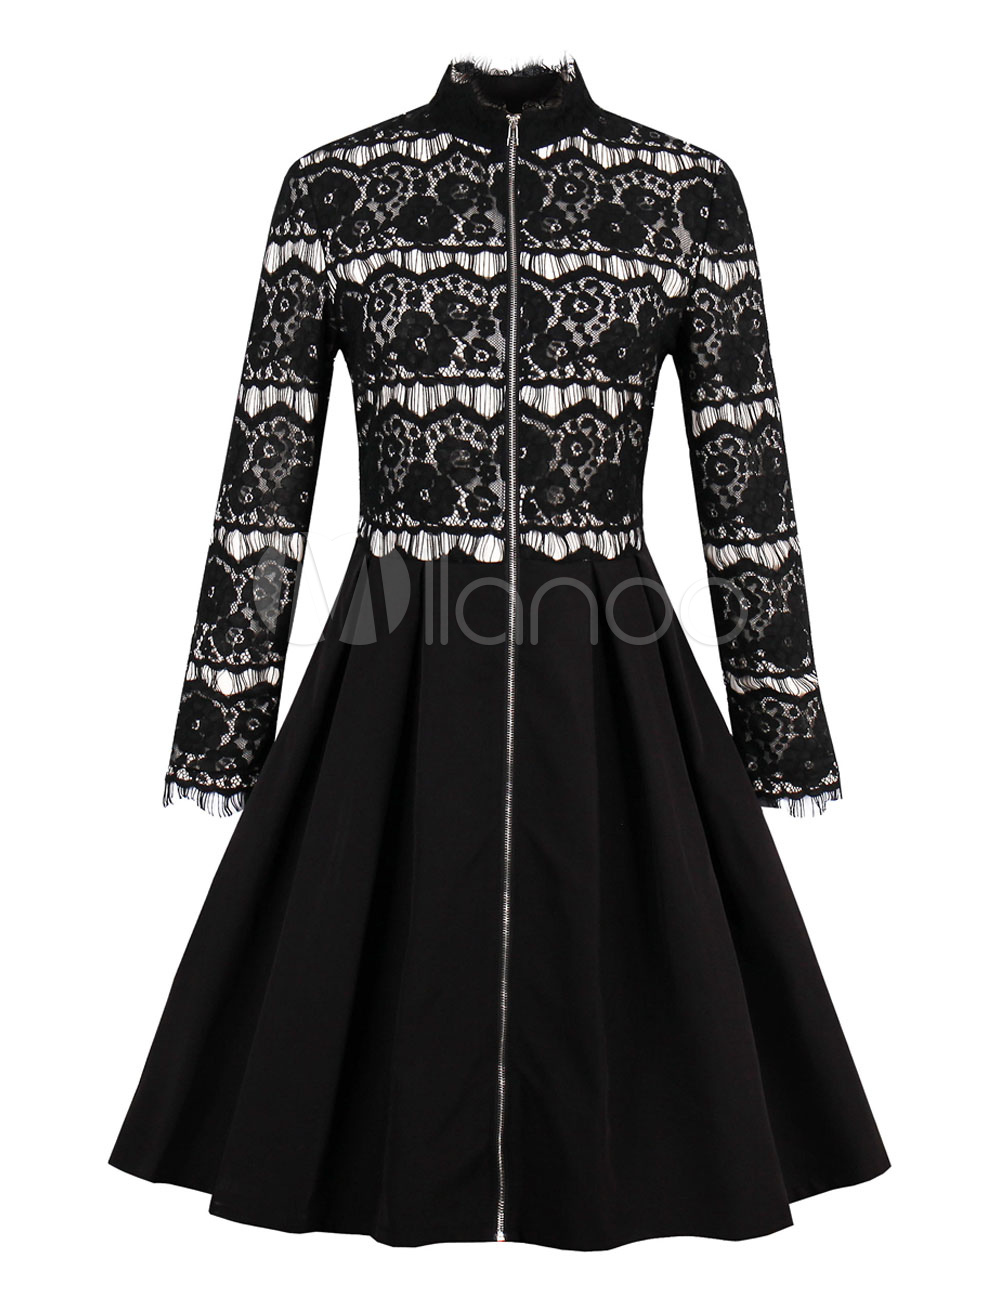 Lace Vintage Dress High Collar Long Sleeve Pleated Flare Dress (Women\\'s Clothing Vintage Dresses) photo